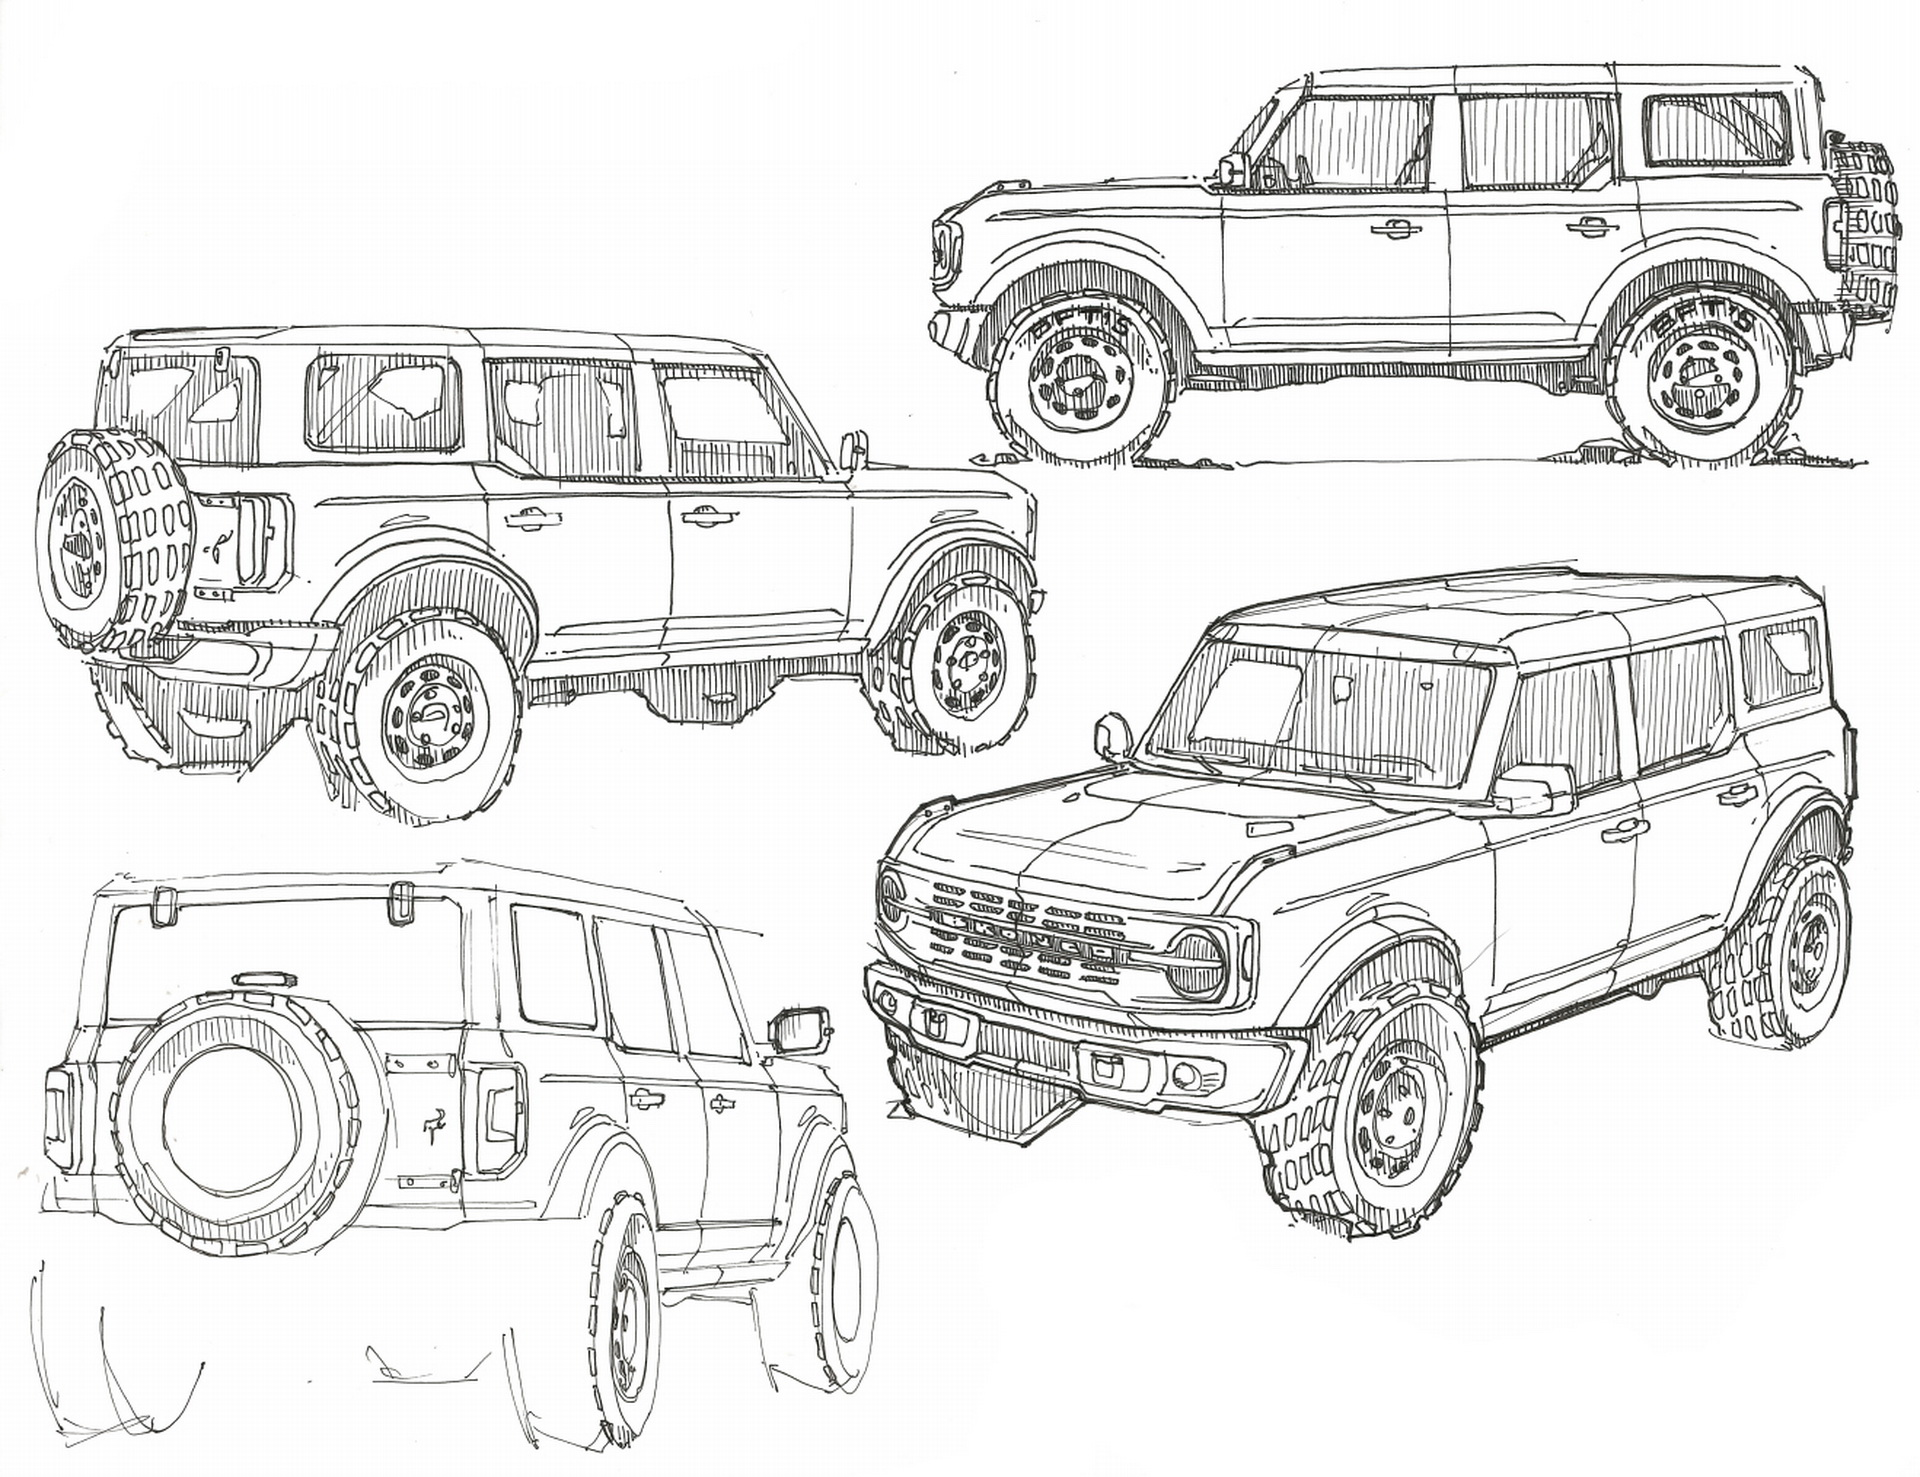 Ford Bronco Truck In The Works, Could Arrive As Early As